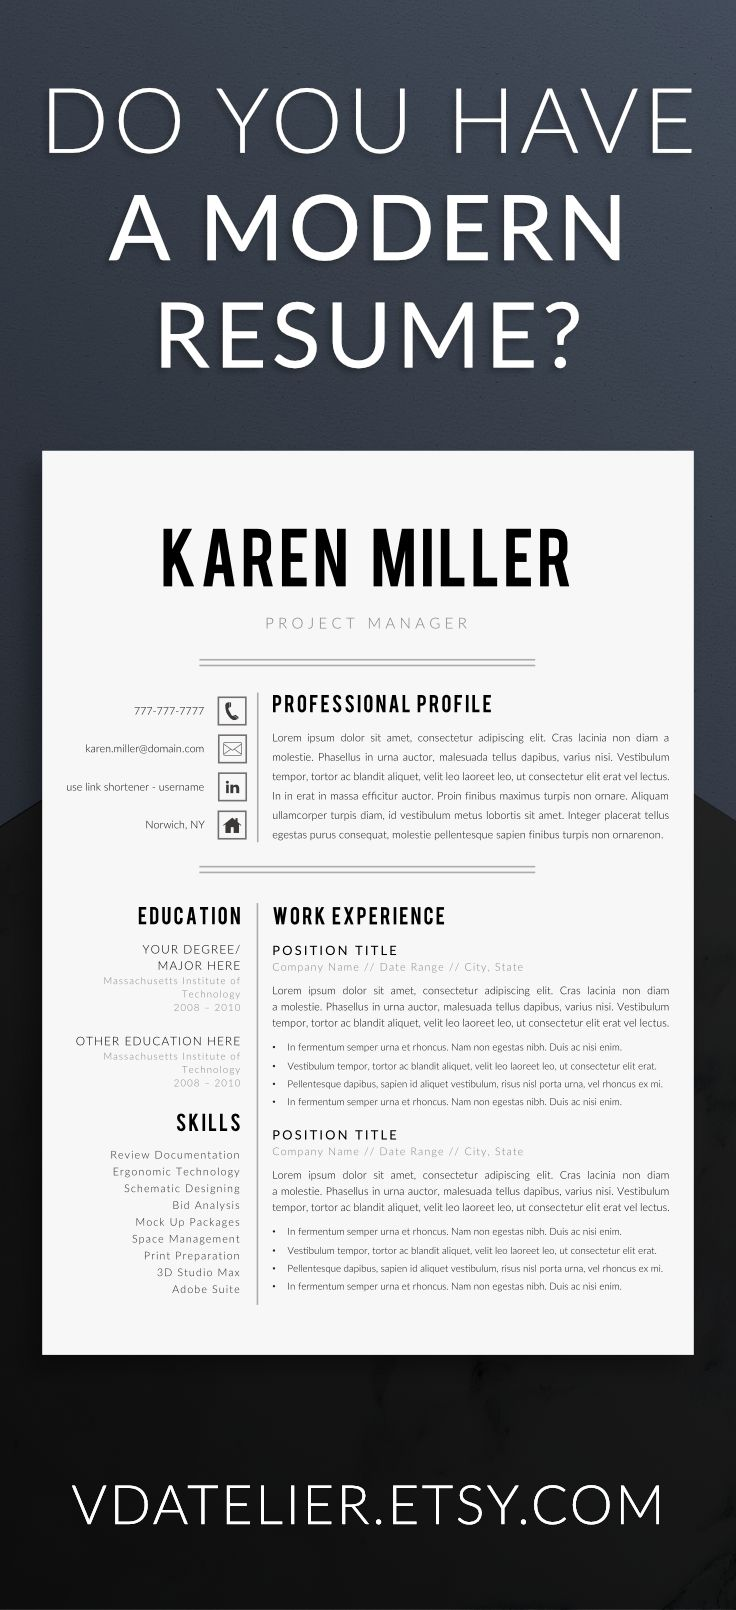 Modern and minimalist resume template for serious professionals.